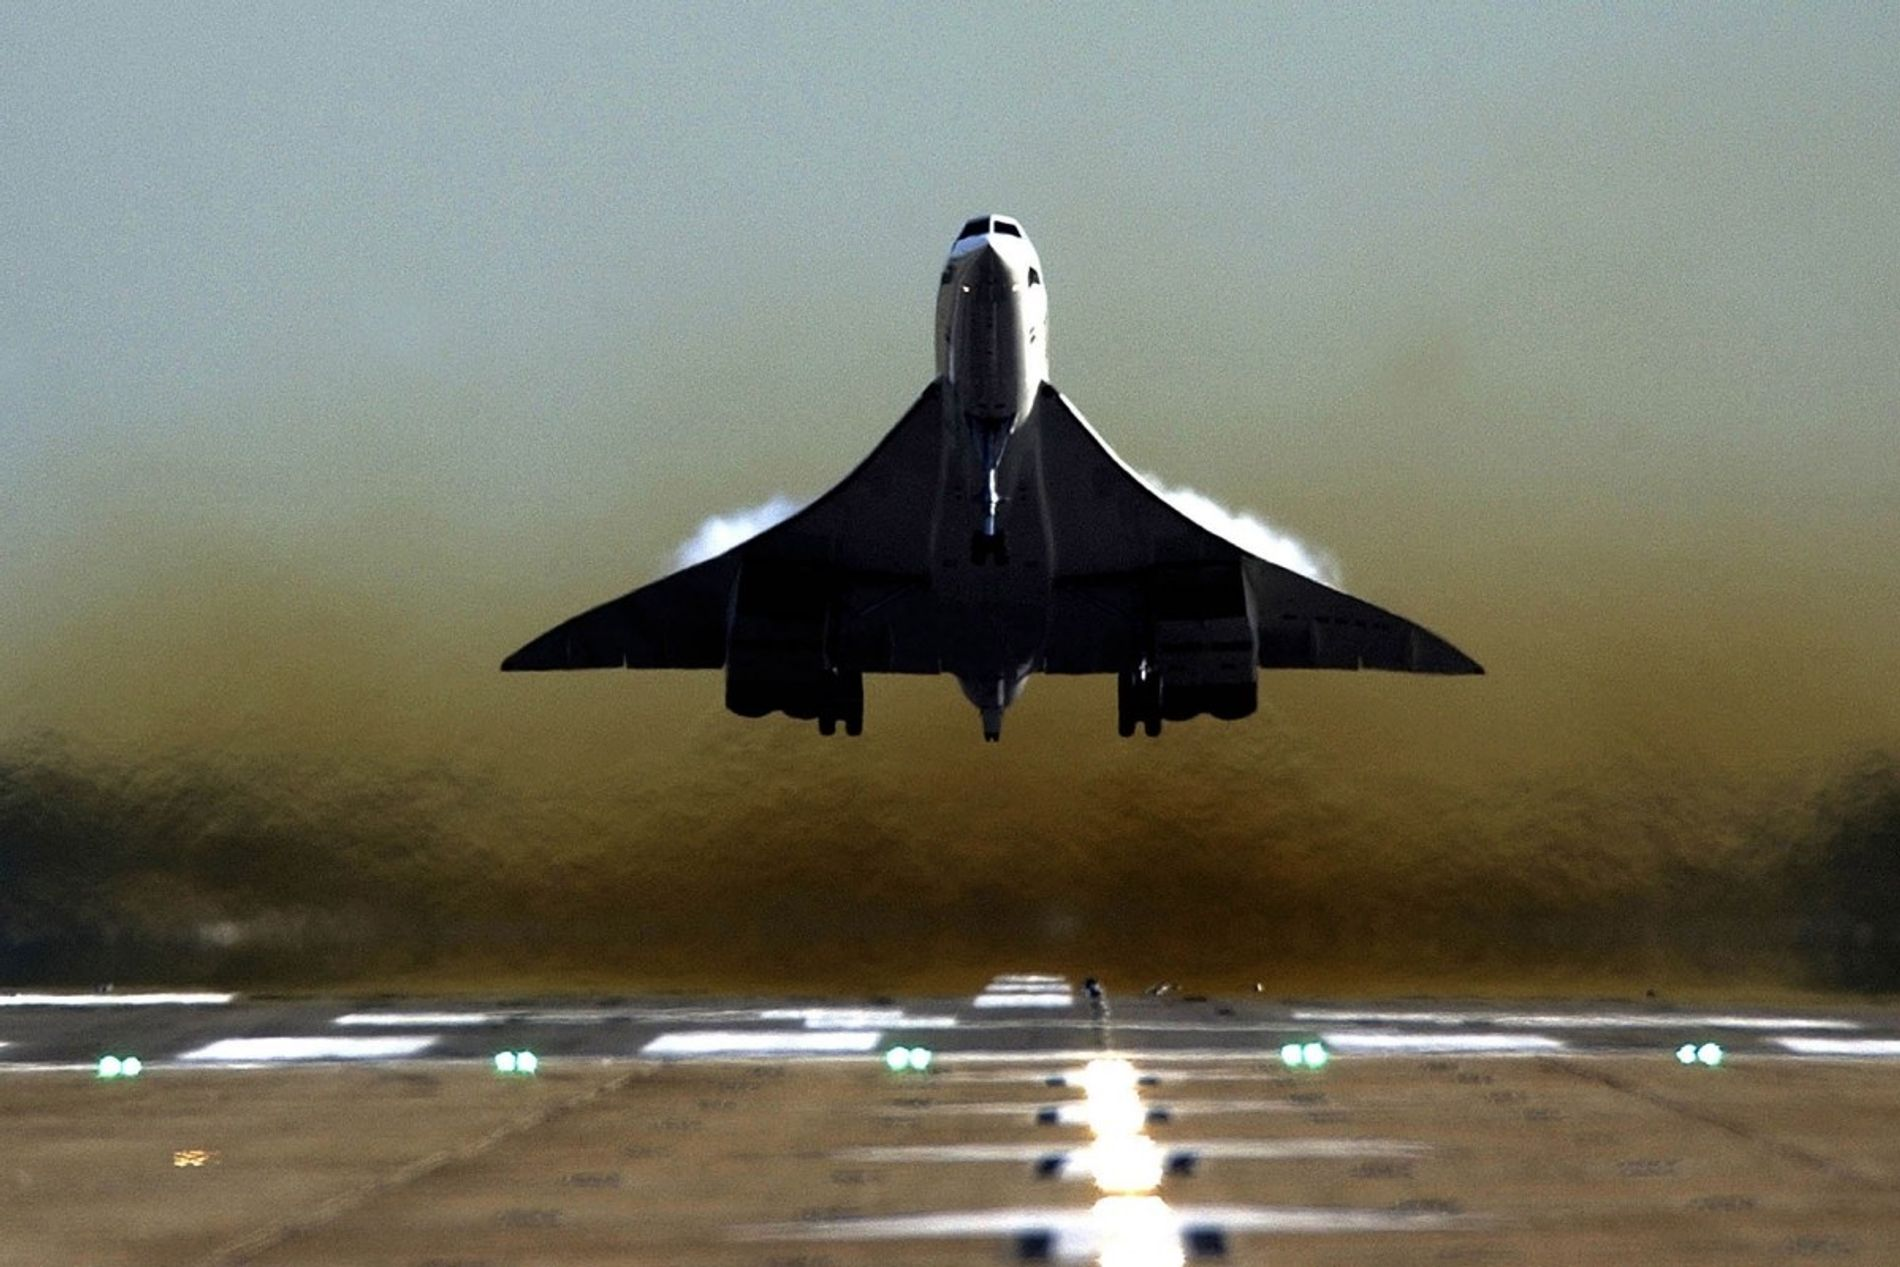 The most iconic feature of the aircraft, Concorde's delta wing design allowed for devastating speed – ...